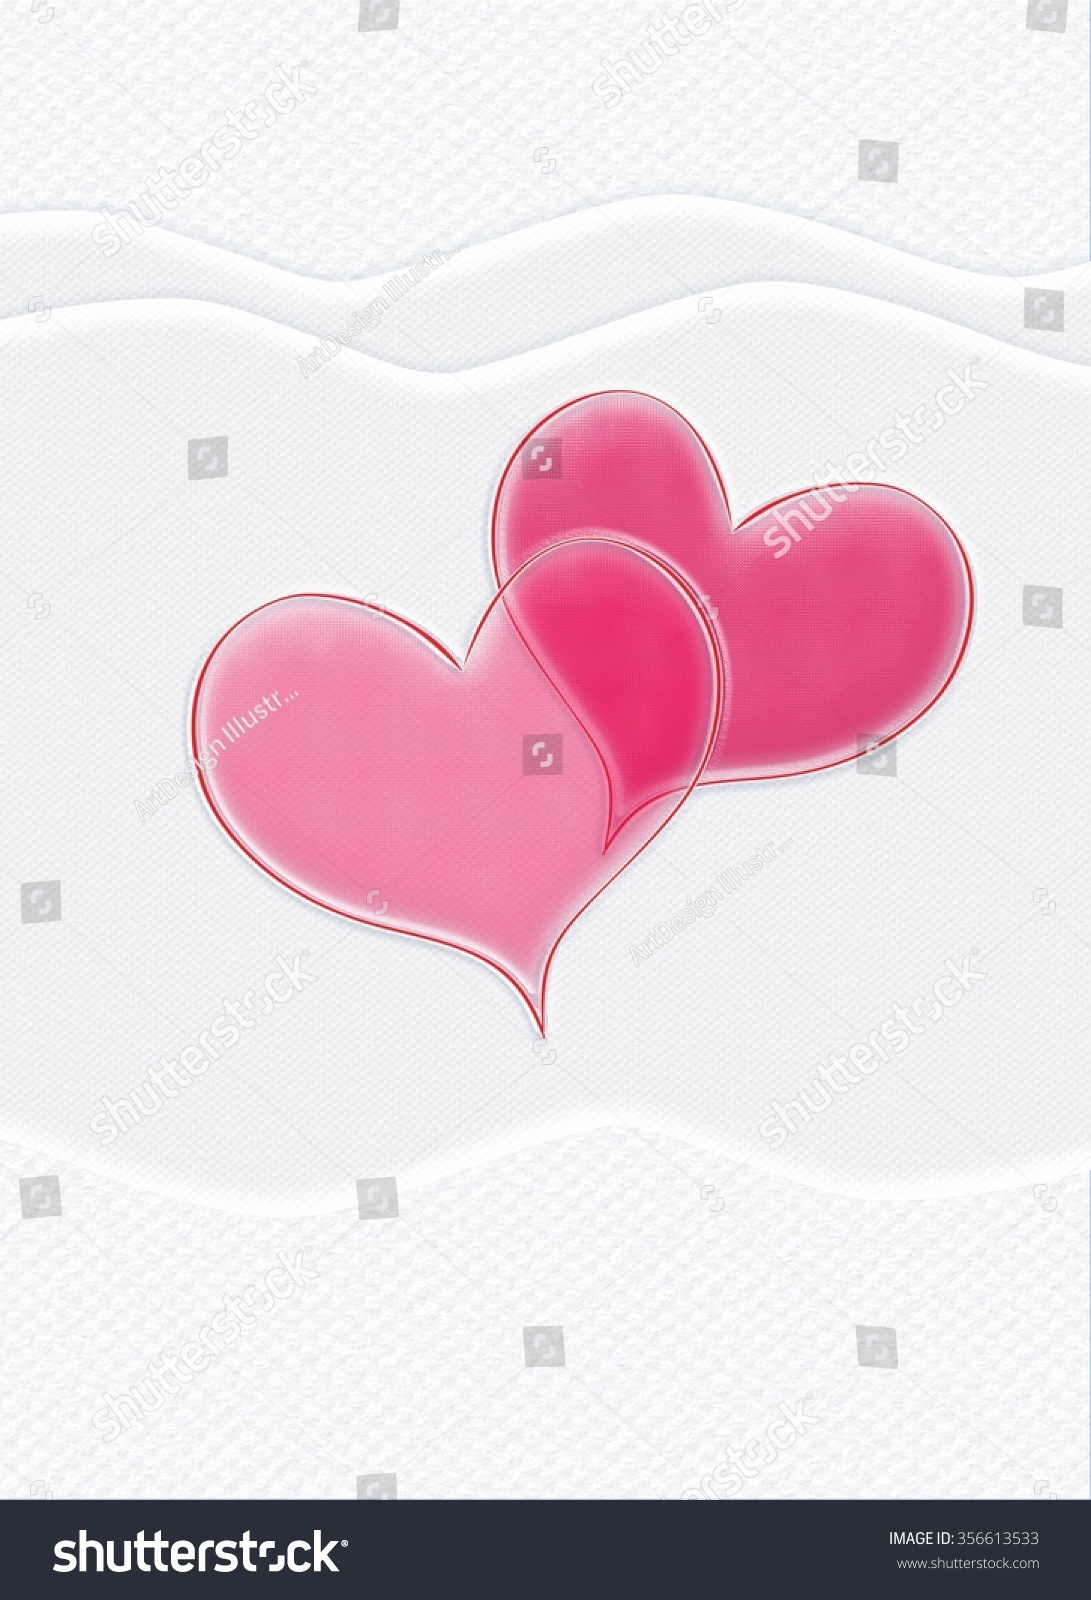 Royalty Free Stock Illustration Of Valentine Day Greeting Cards